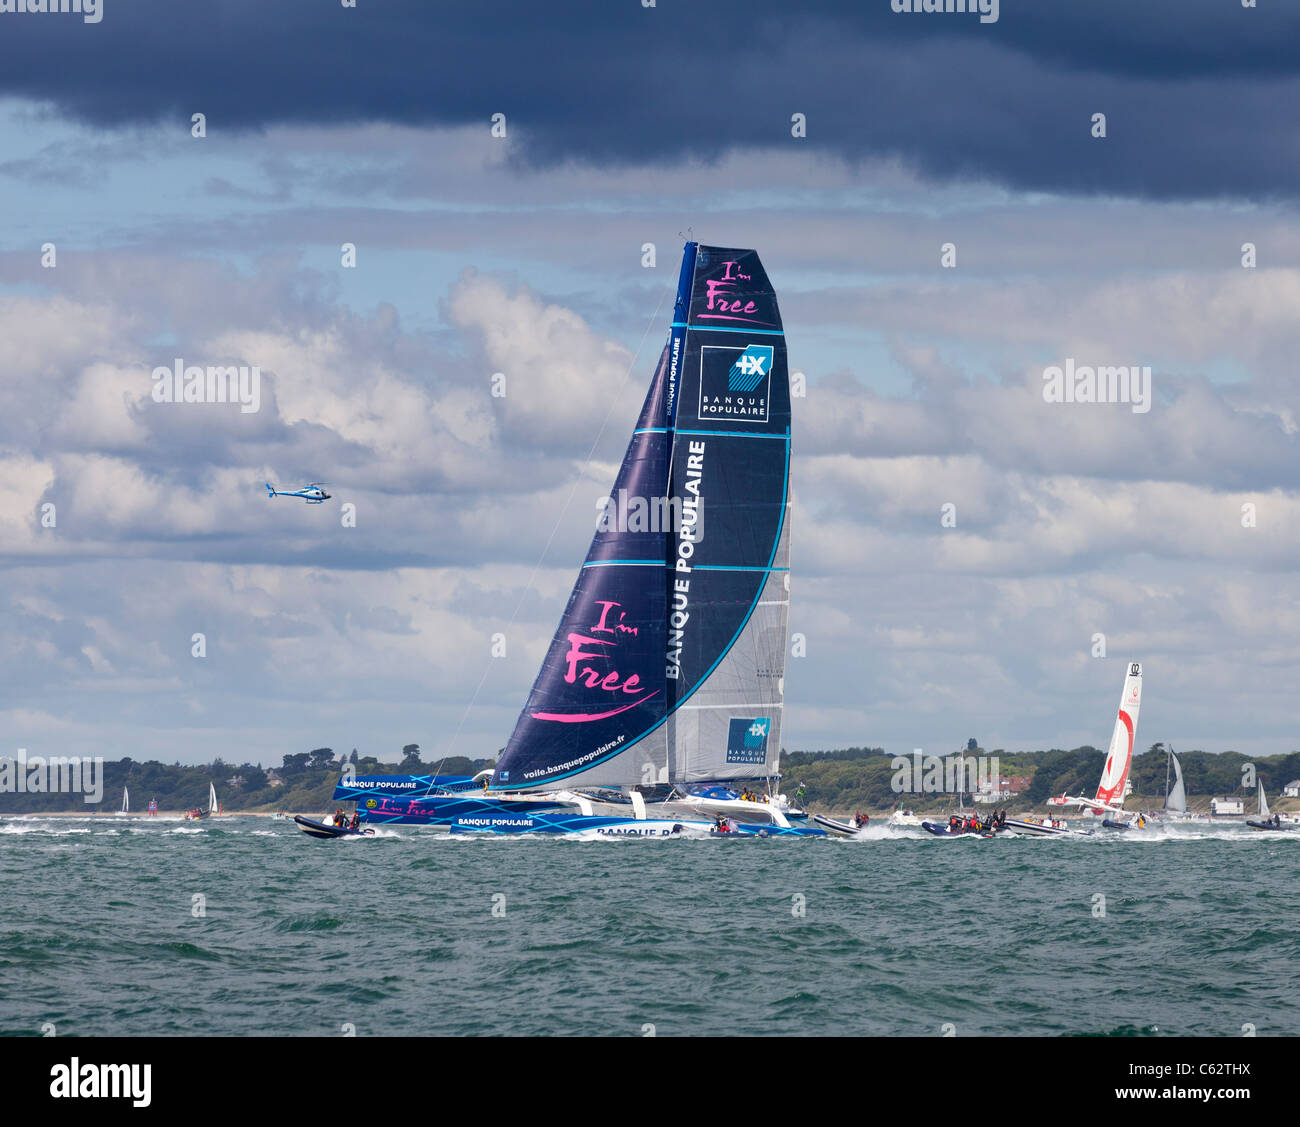 Maxi Banque Populaire V sail racing trimaran skippered by Loick Peyron high tech modern performance fast carbon - Stock Image